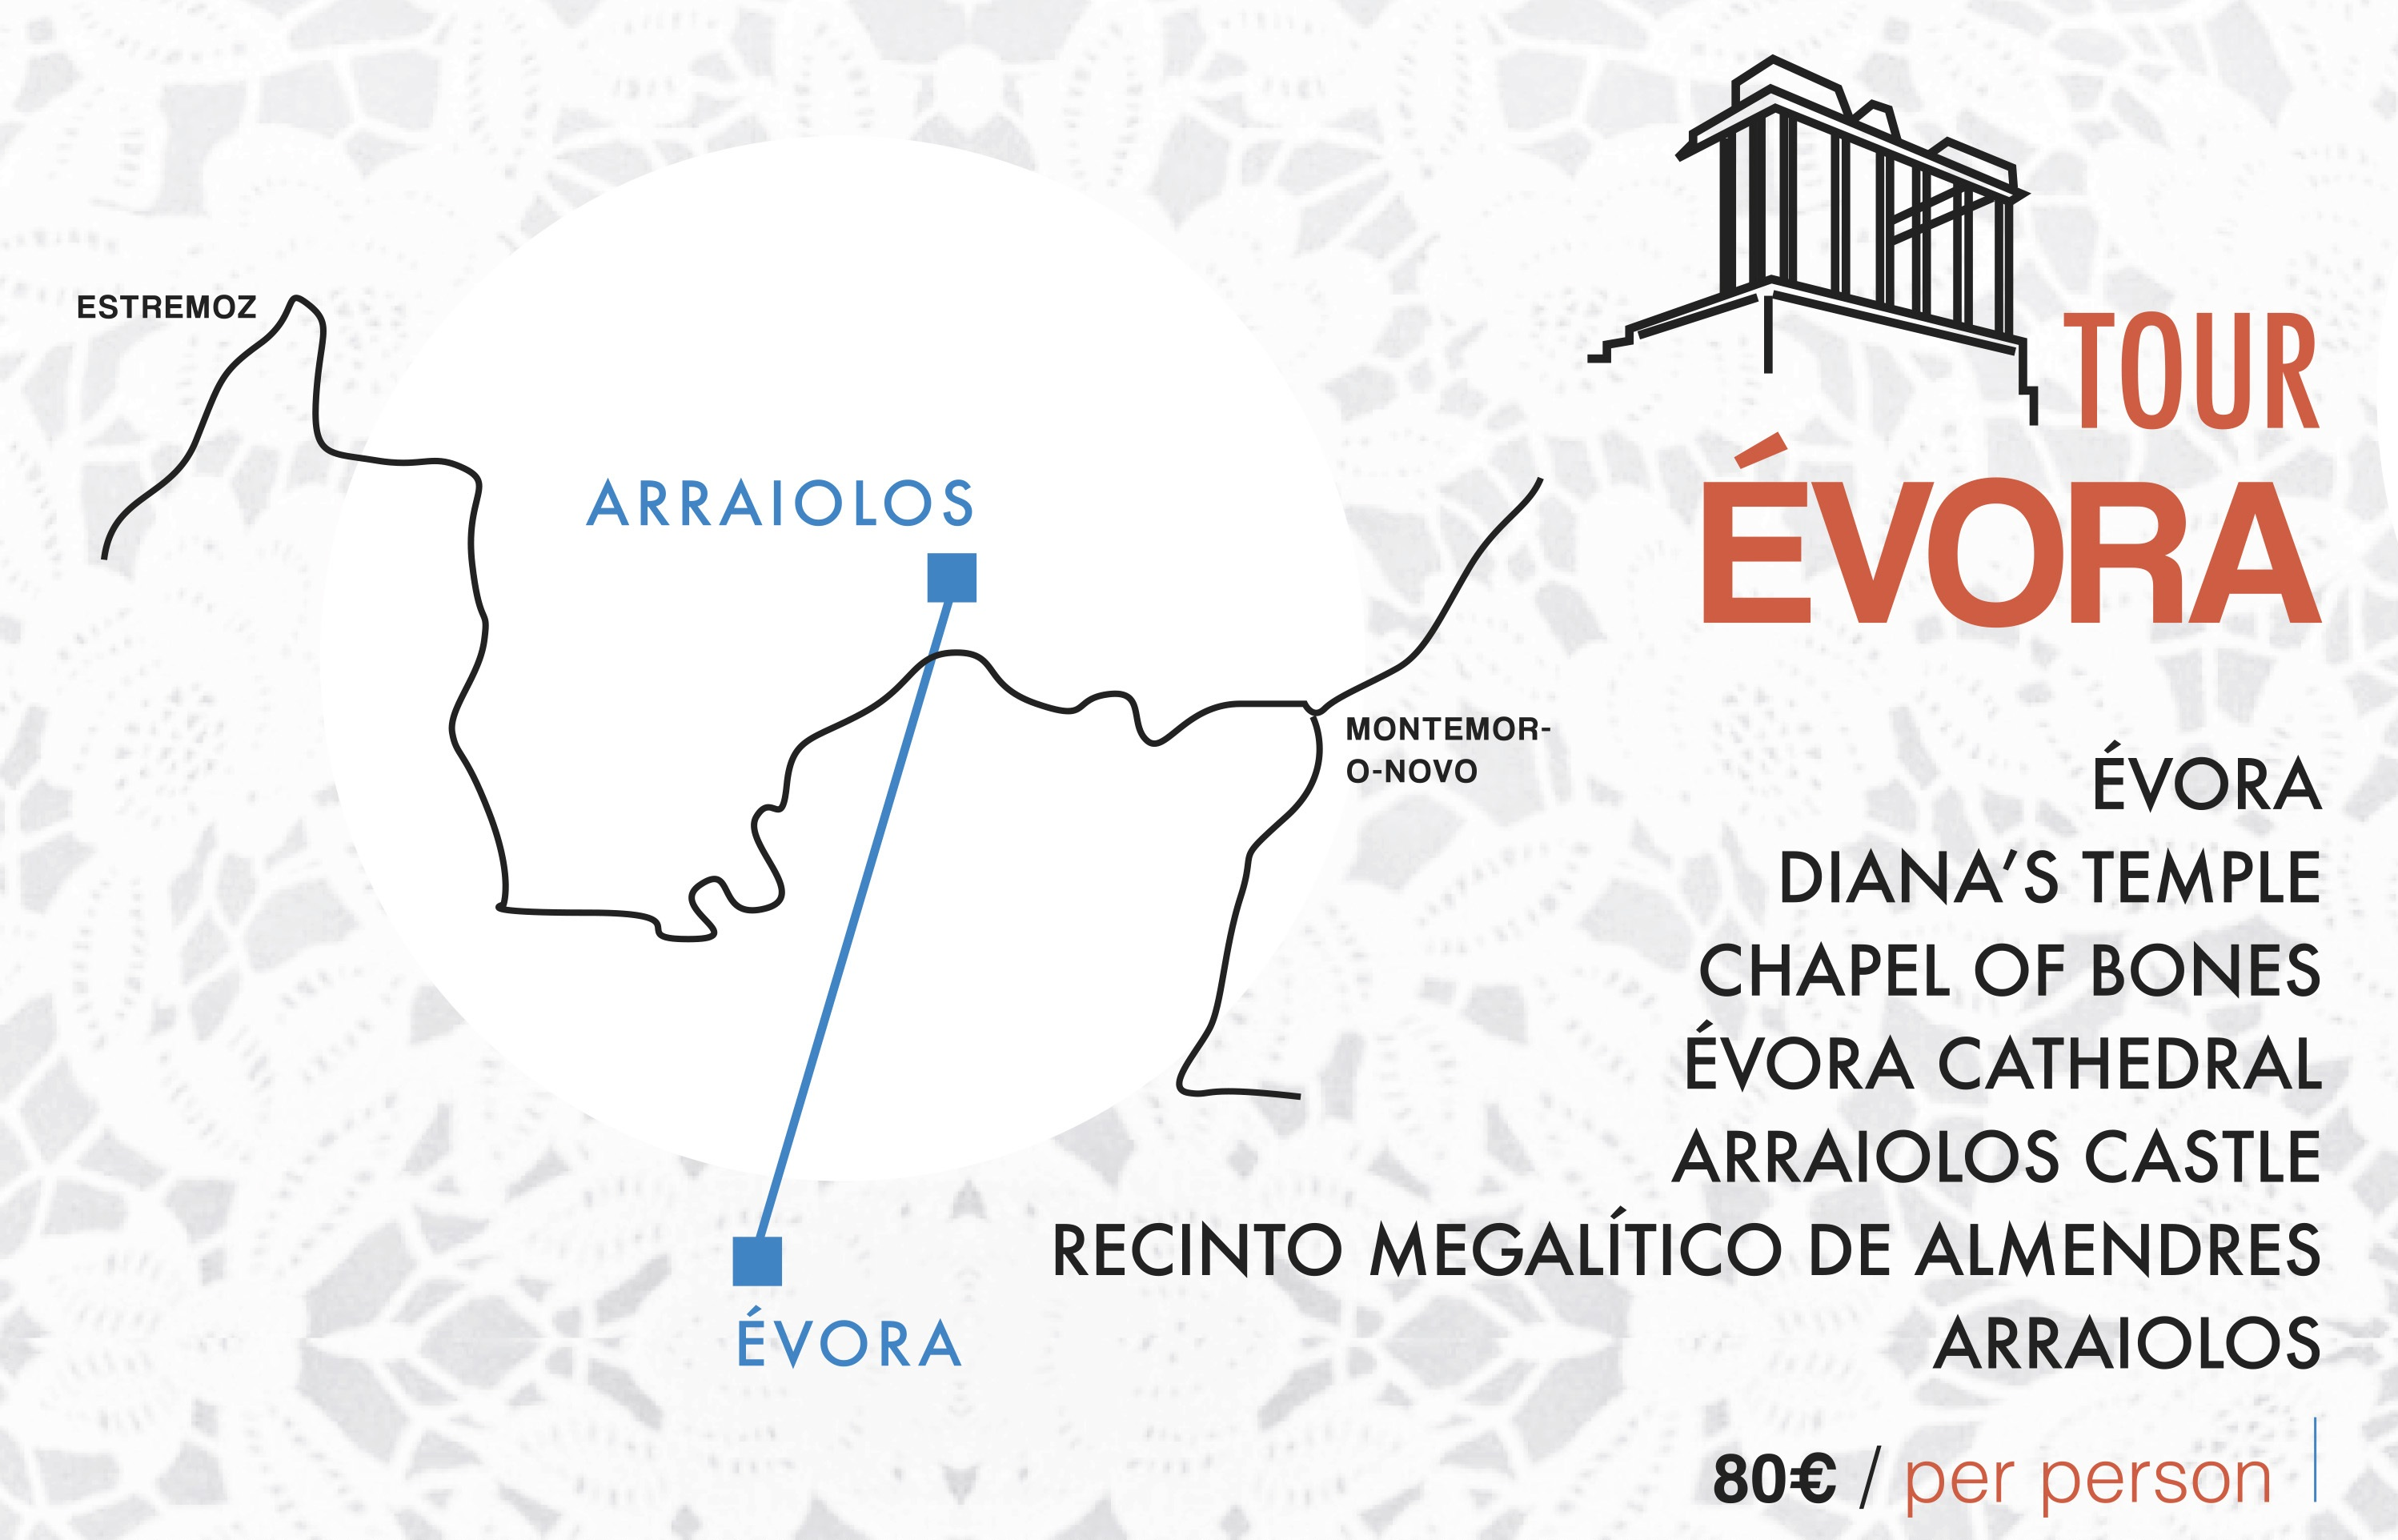 tour evora wedding in portugal